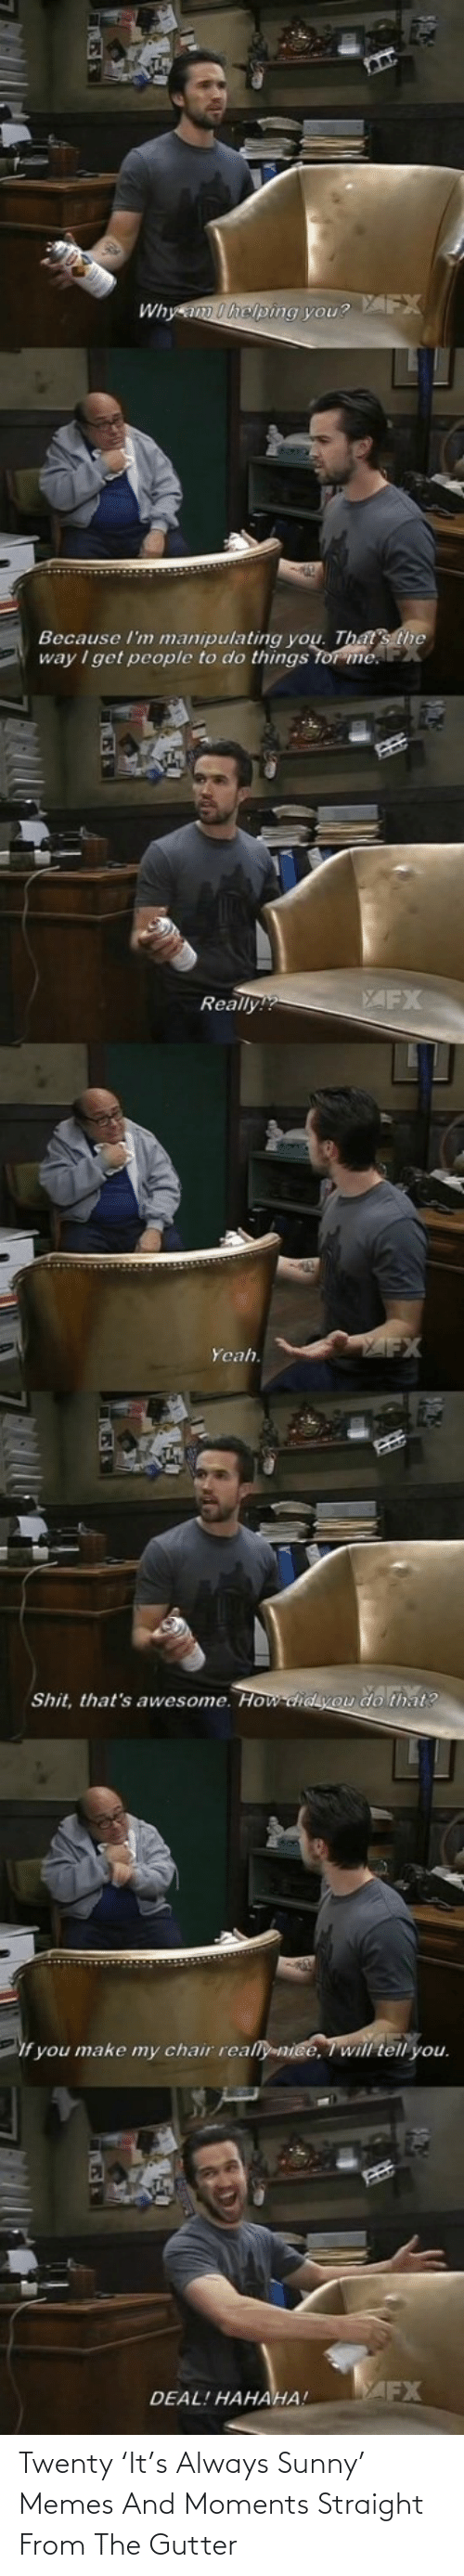 sunny: Twenty 'It's Always Sunny' Memes And Moments Straight From The Gutter